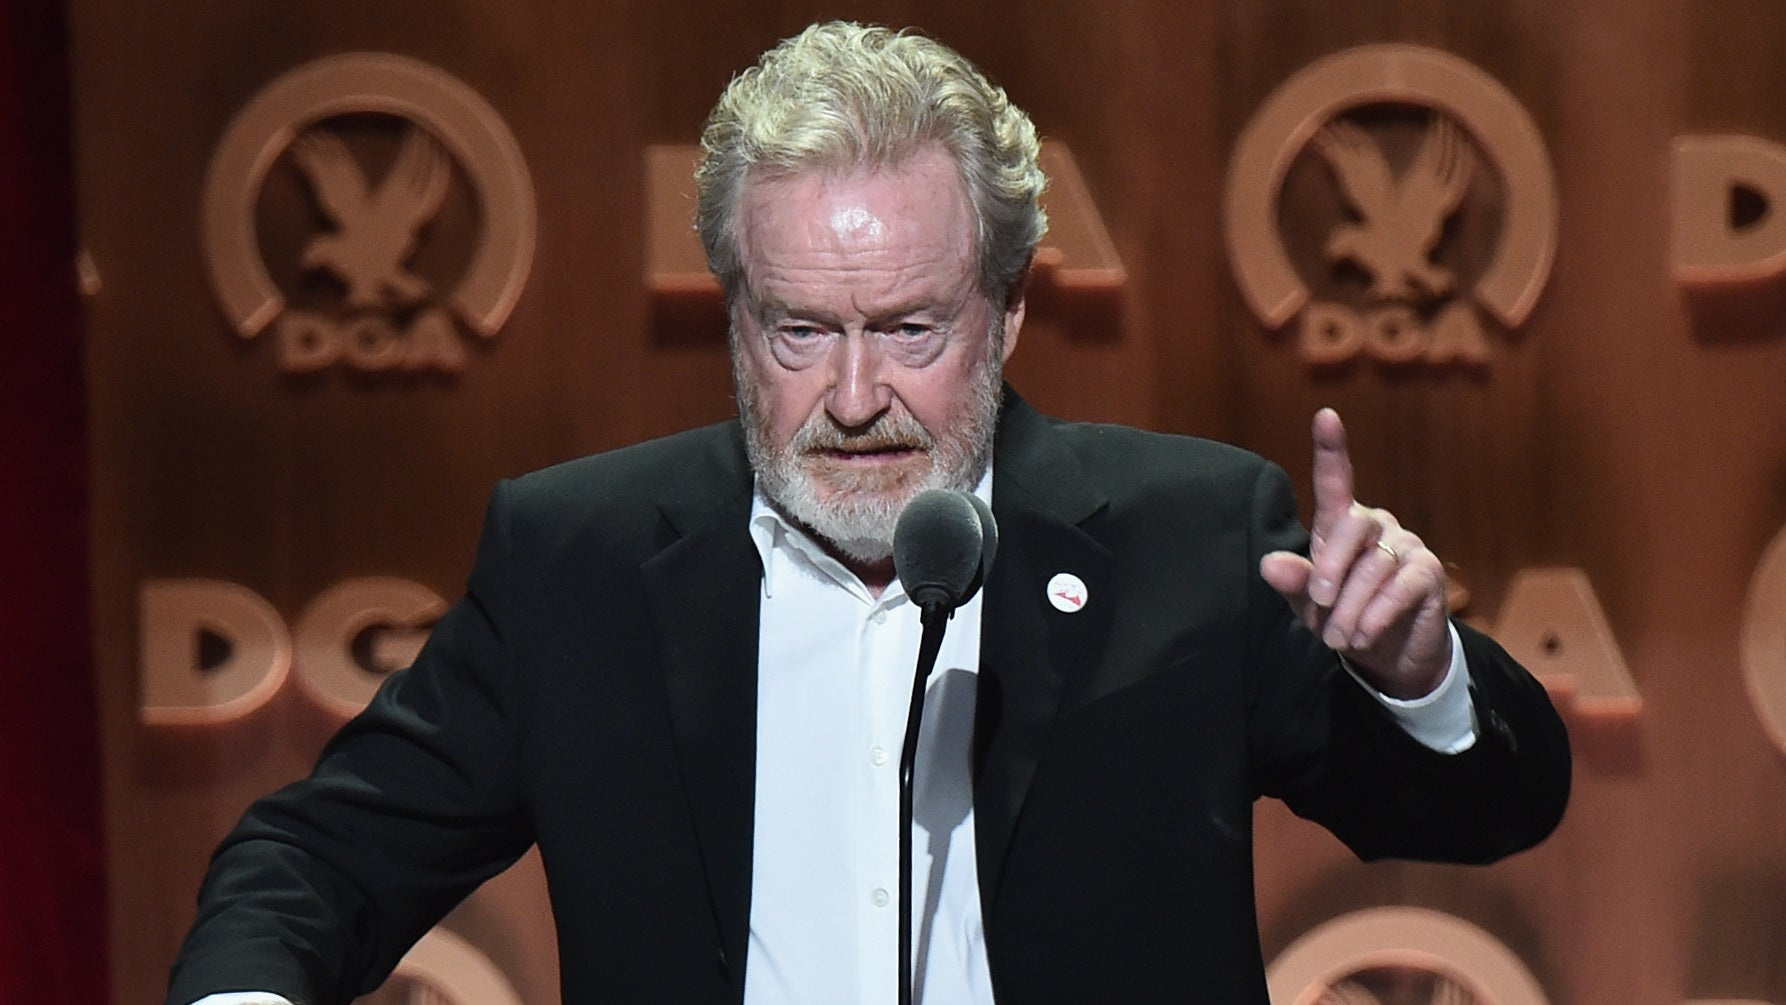 Ridley Scott Thinks Disney Should Hire More Experienced Directors For Star Wars